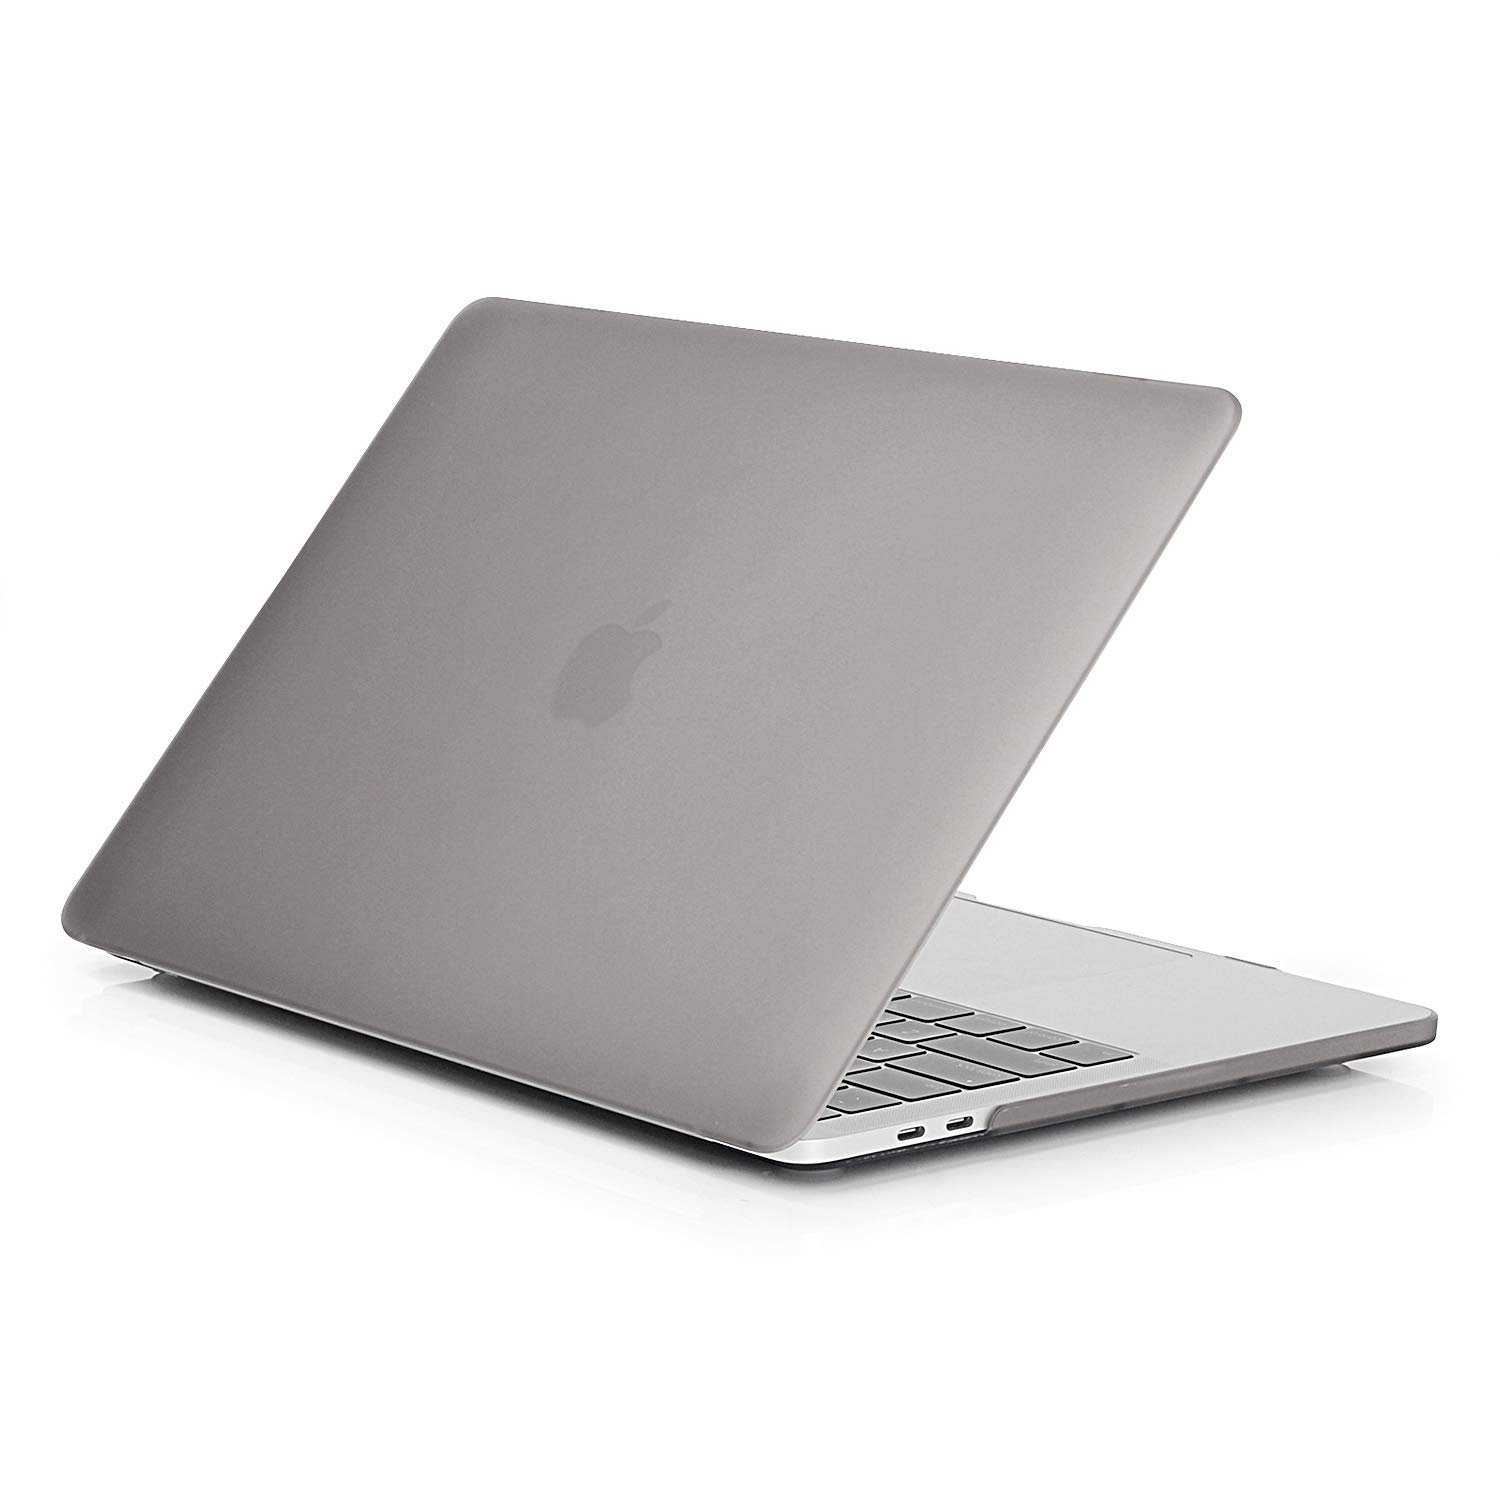 MacBook Pro (13 inch) Best Laptops for Photo Editing